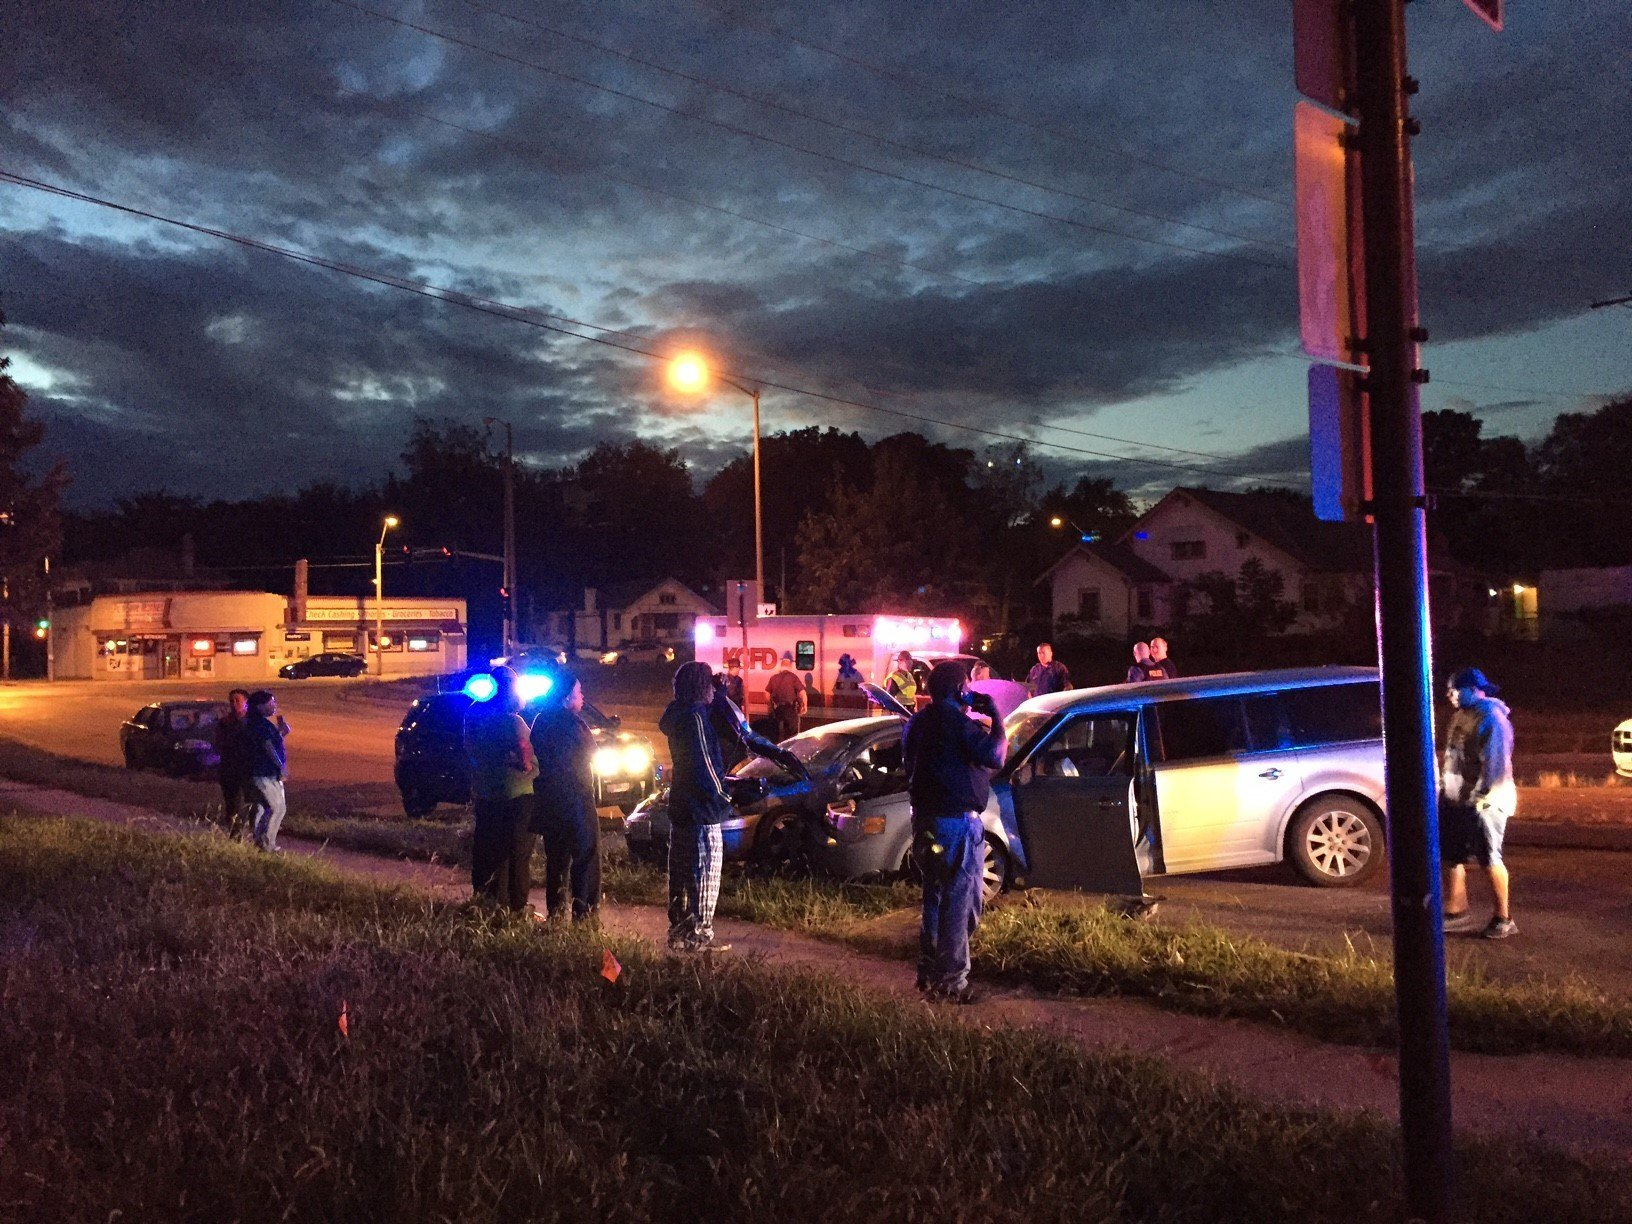 The suspect attempted to turn onto westbound 59th St. at a high rate of speed, went over the median and struck another vehicle in the eastbound lanes. (Dwain Crispell/KCTV5)